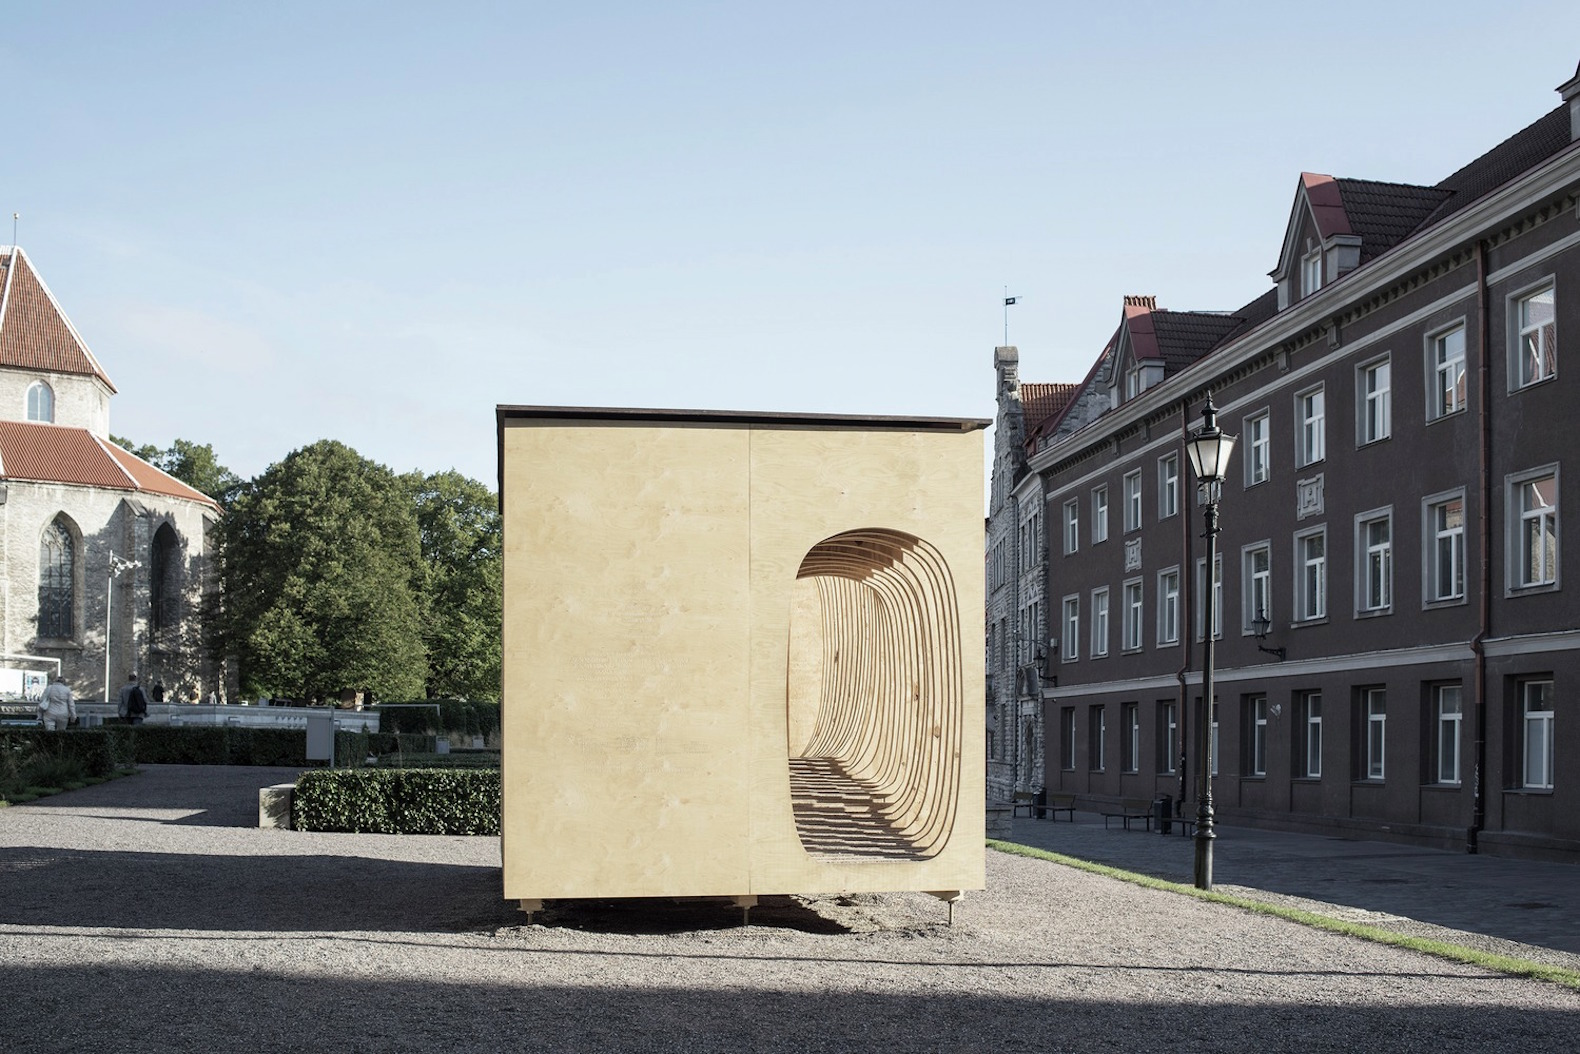 Cozy READER shelter made from plywood offers escape into the world of books